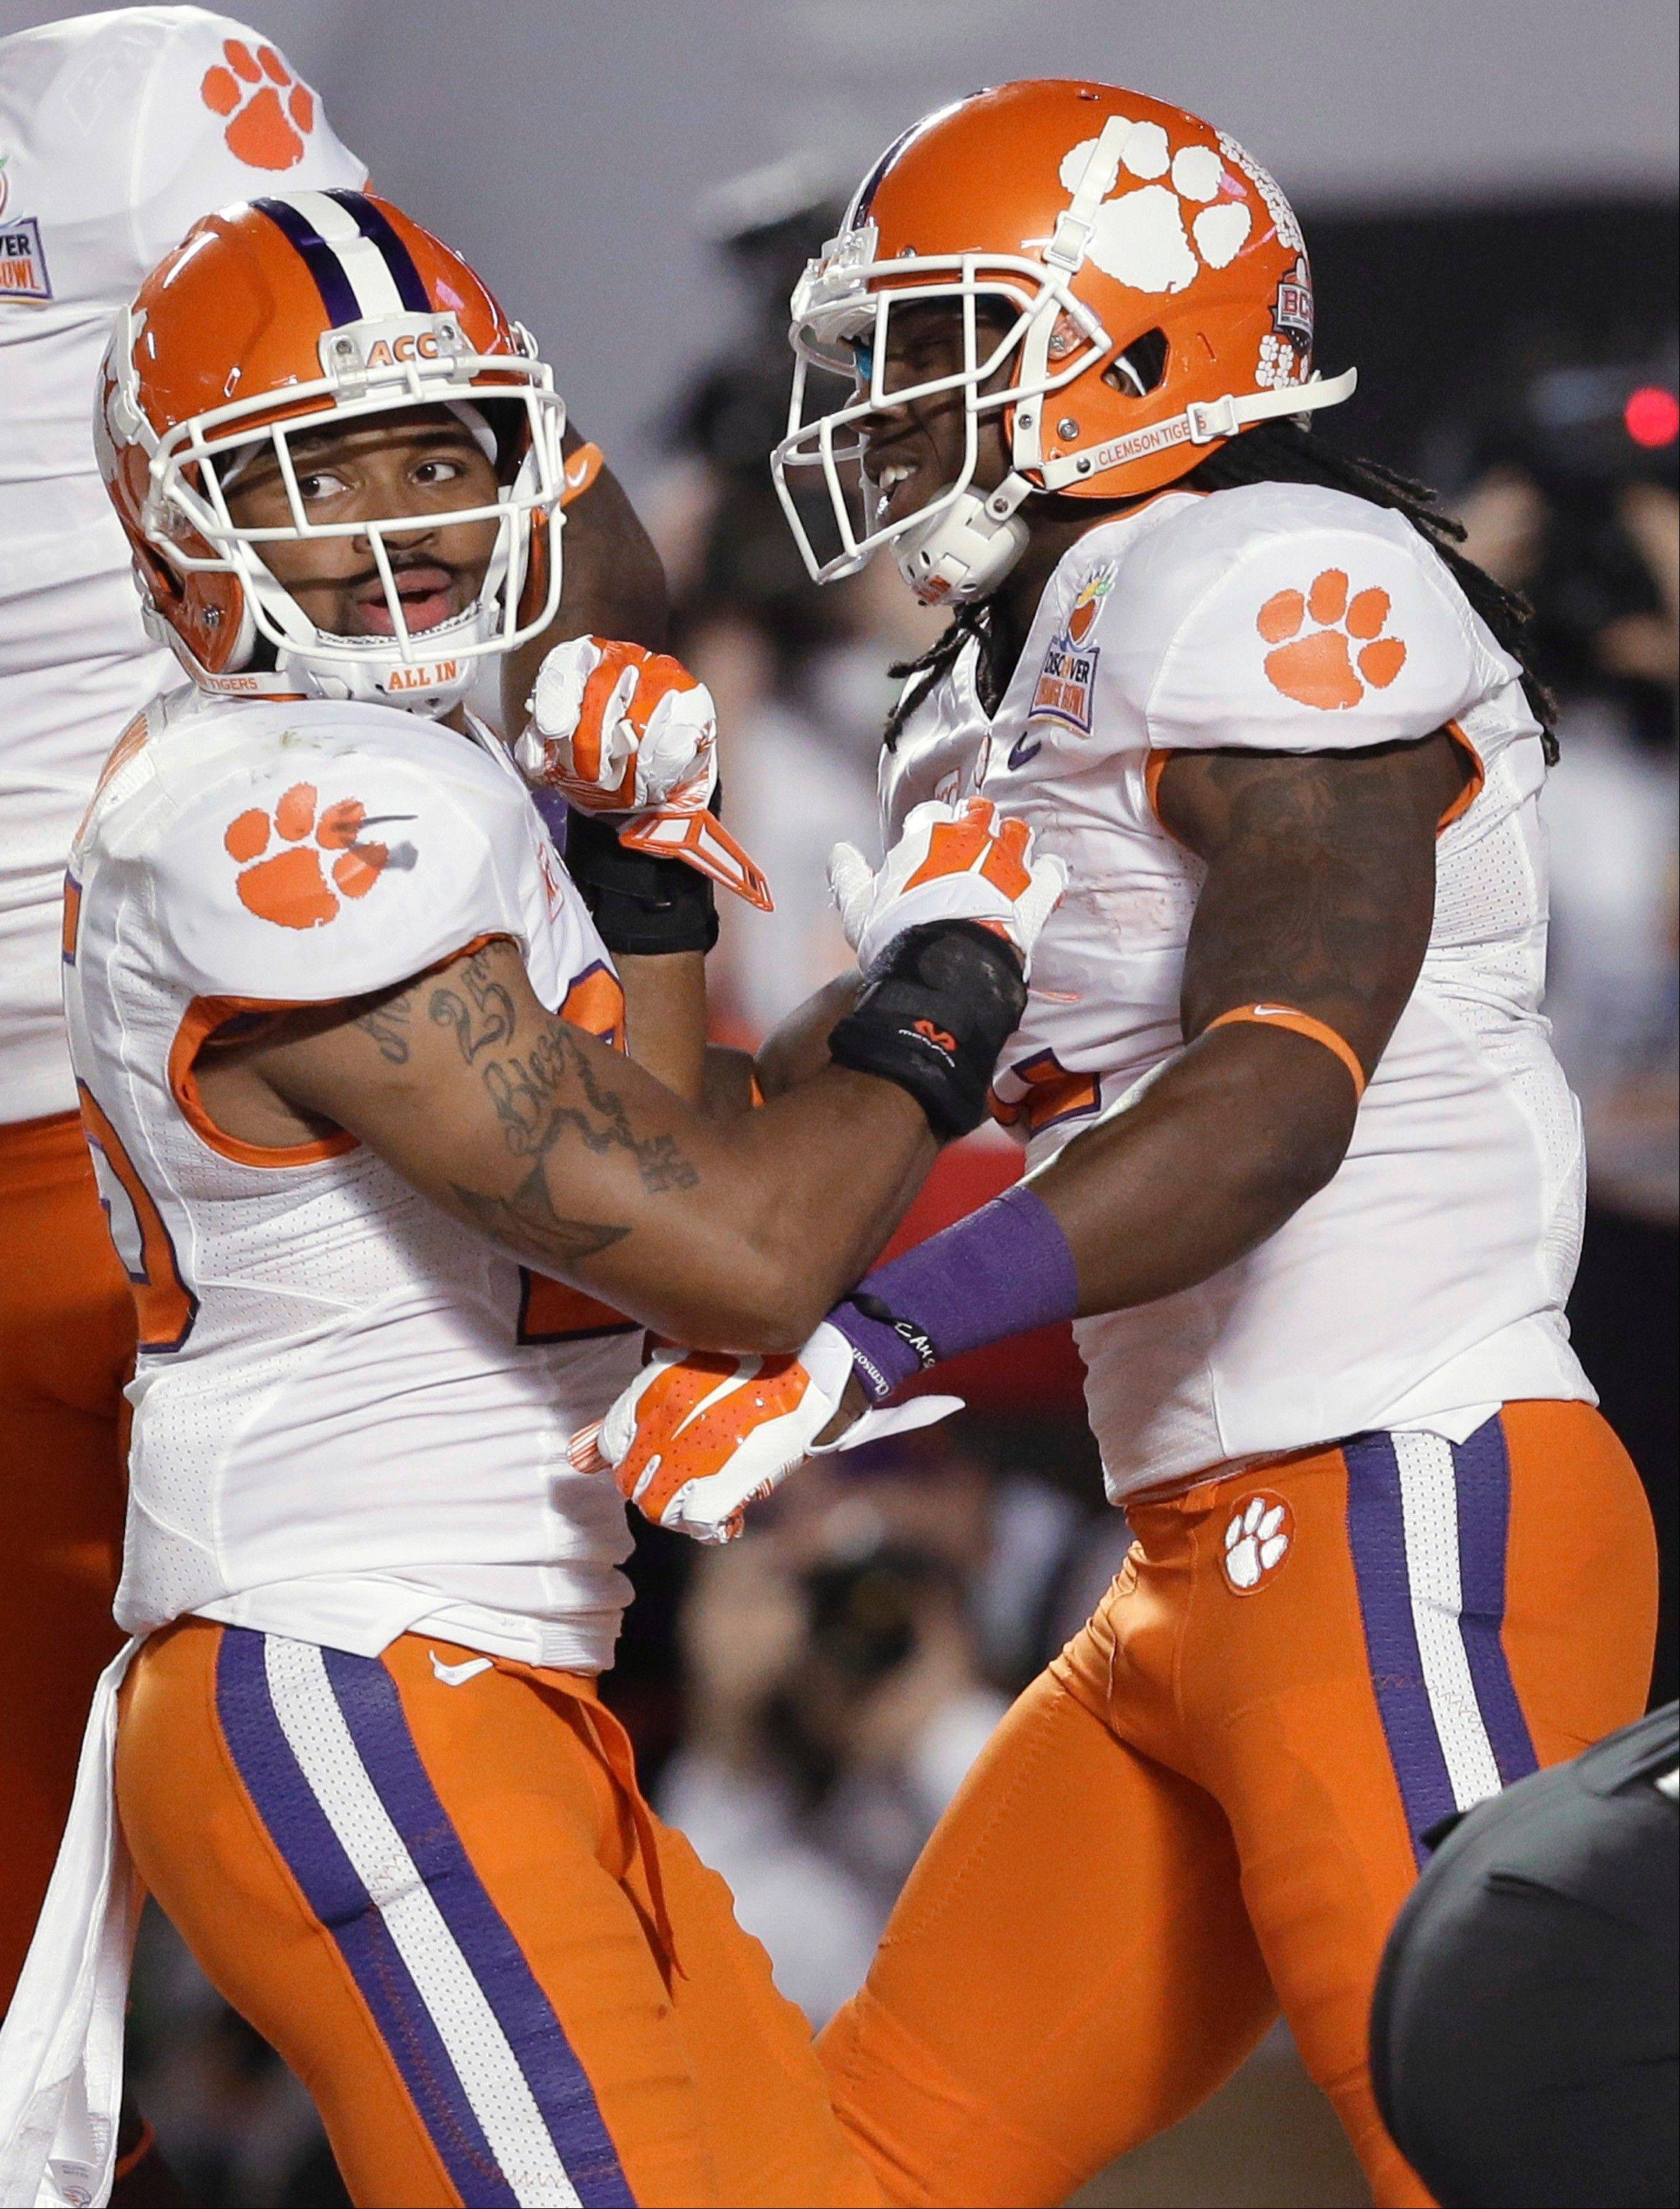 Clemson wide receiver Sammy Watkins, right, is congratulated by running back Roderick McDowell after scoring a touchdown during the Orange Bowl against Ohio State in Miami Gardens, Fla.